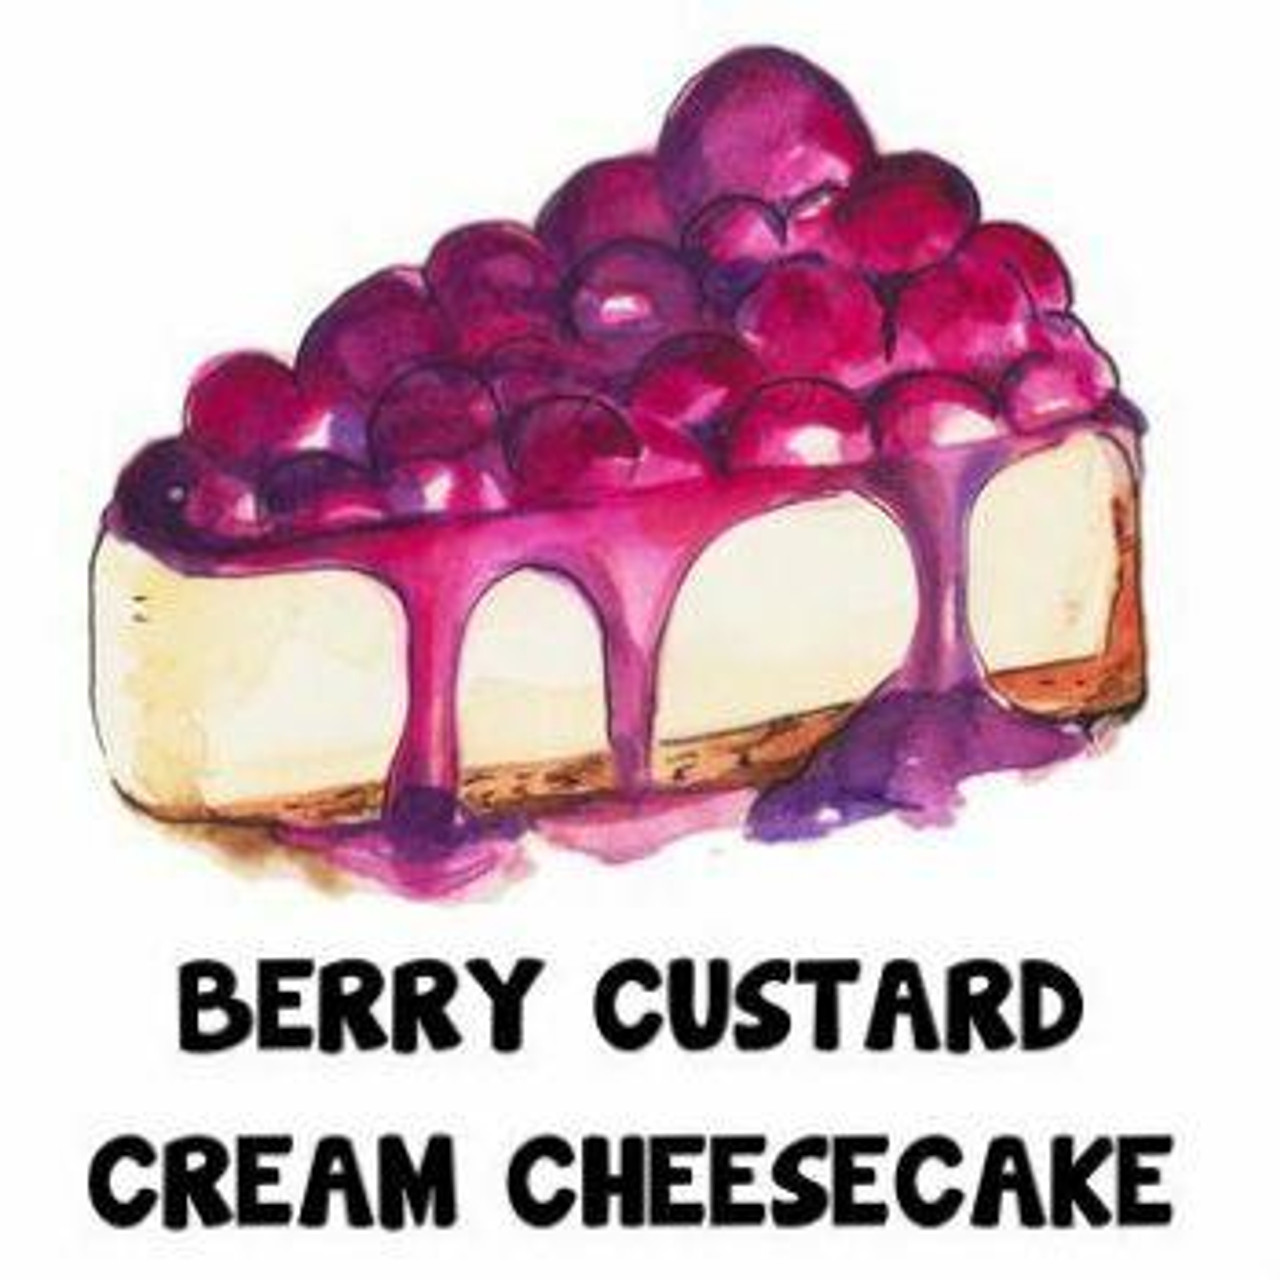 One Shot Blended Flavours BERRY CUSTARD CREAM CHEESECAKE ONE SHOT